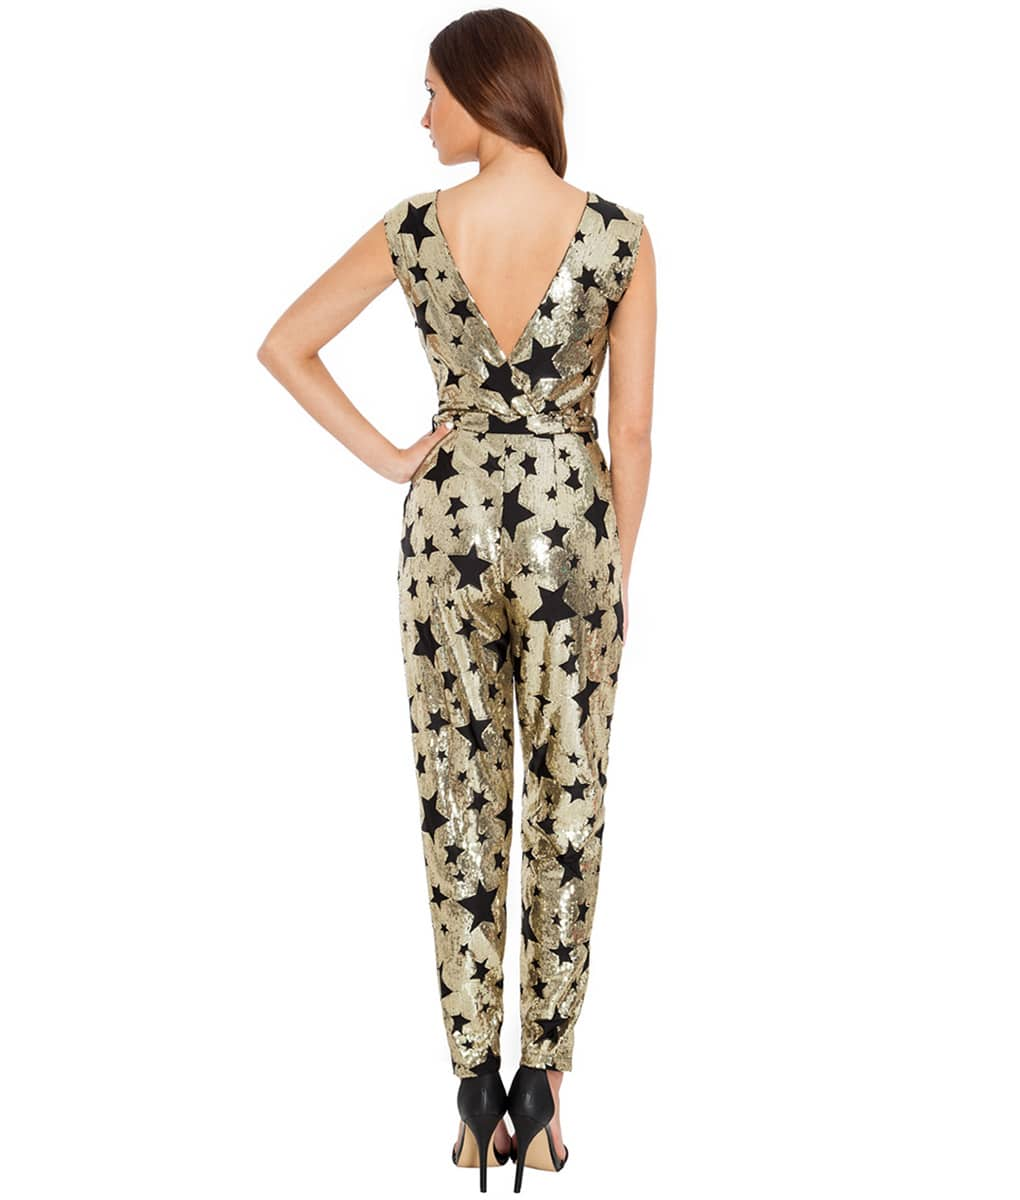 Alila-Gold-sequin-star-jumpsuit-city-goddess